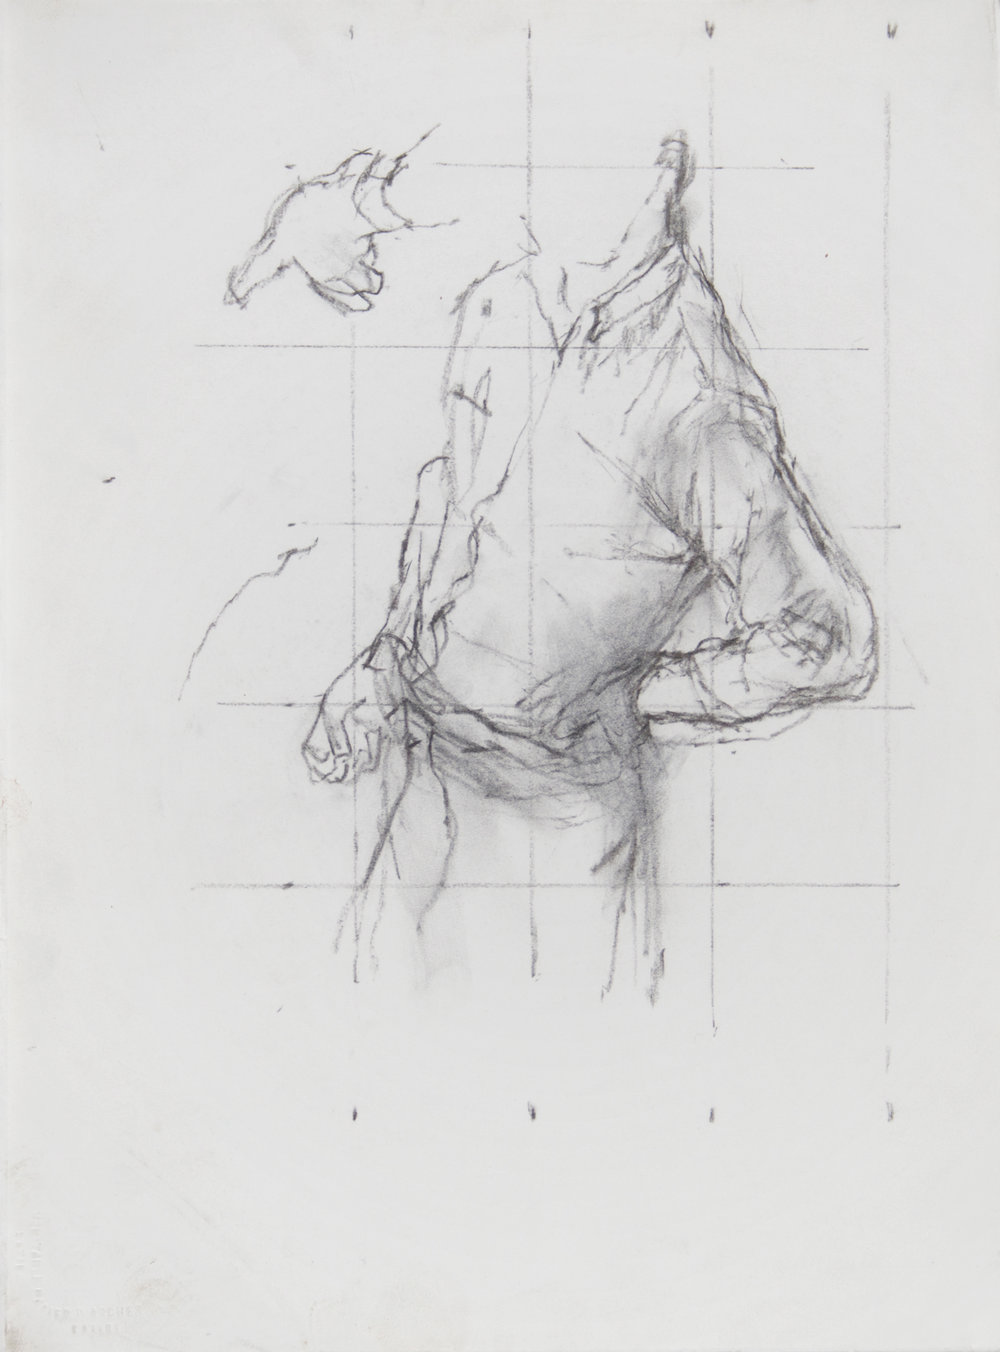 1985_Study_For_Self_Portrait_charcoal_on_paper_15x11in_WPF412.jpg